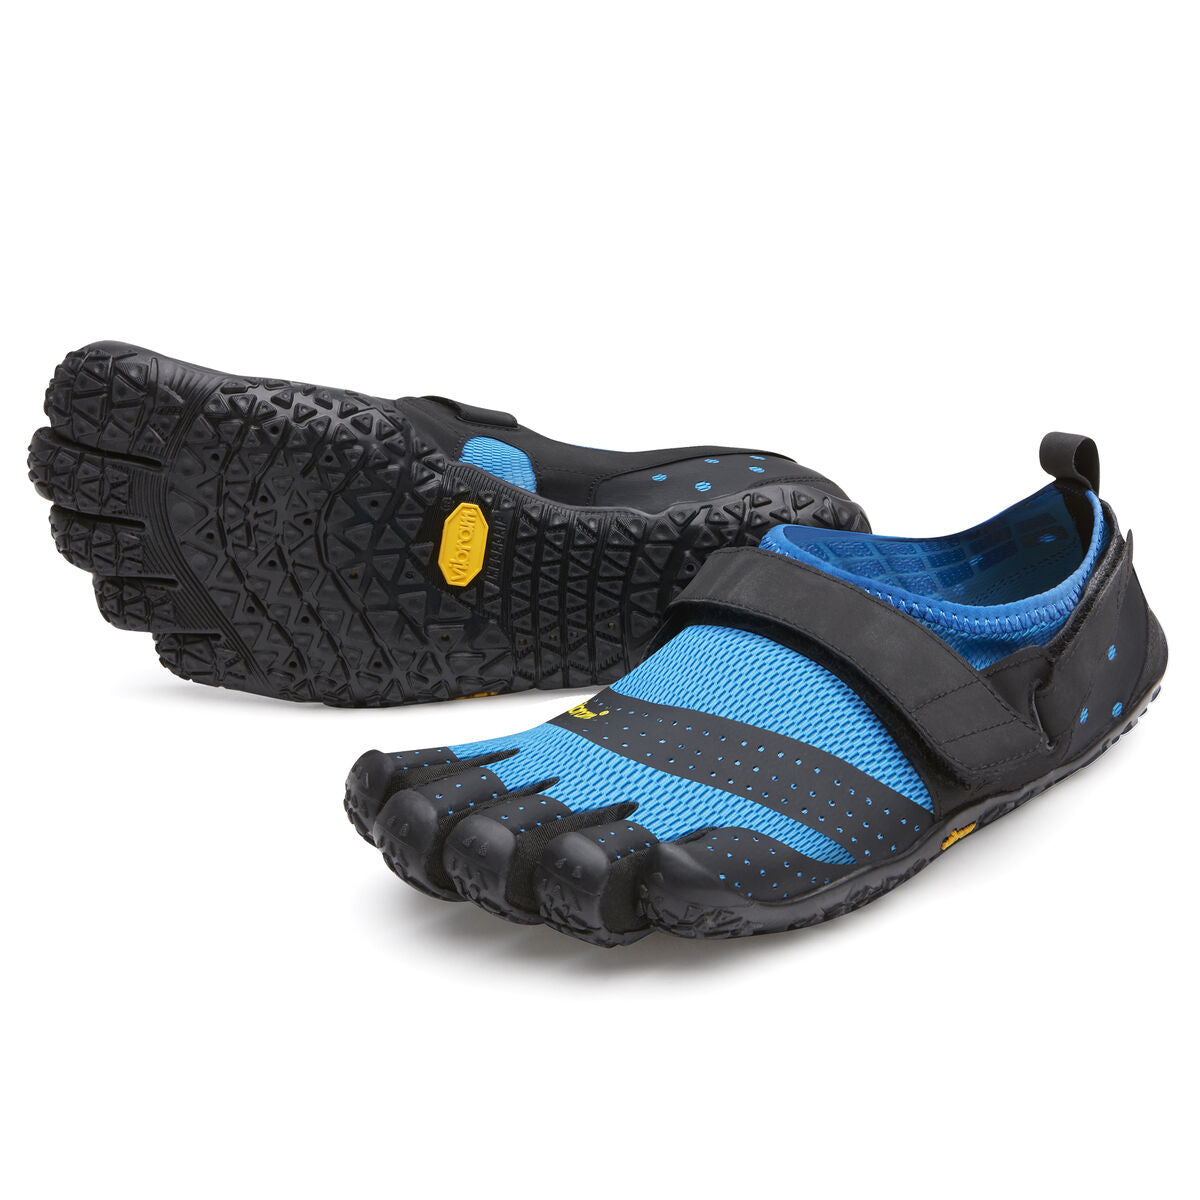 Men's Vibram Five Fingers V-Aqua Water Shoe in Blue/Black from the front